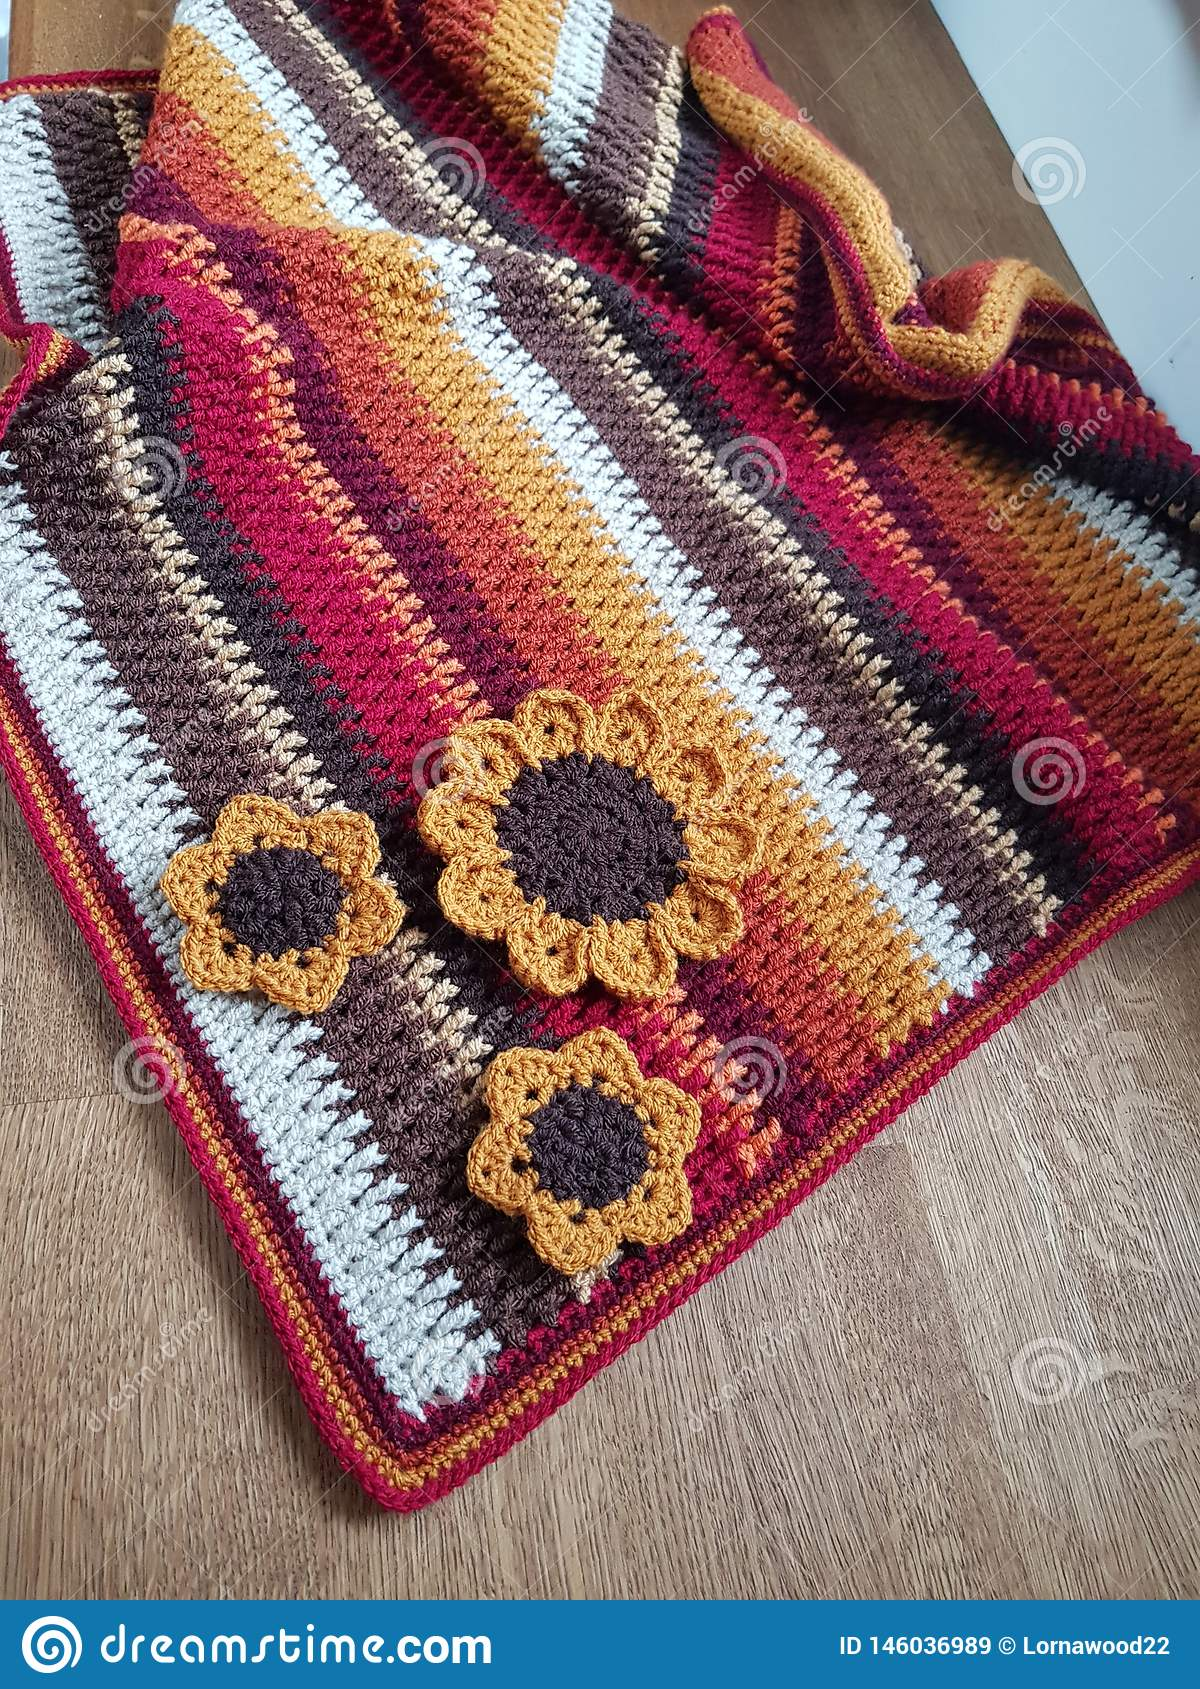 Crochet Autumn Blanket, textured